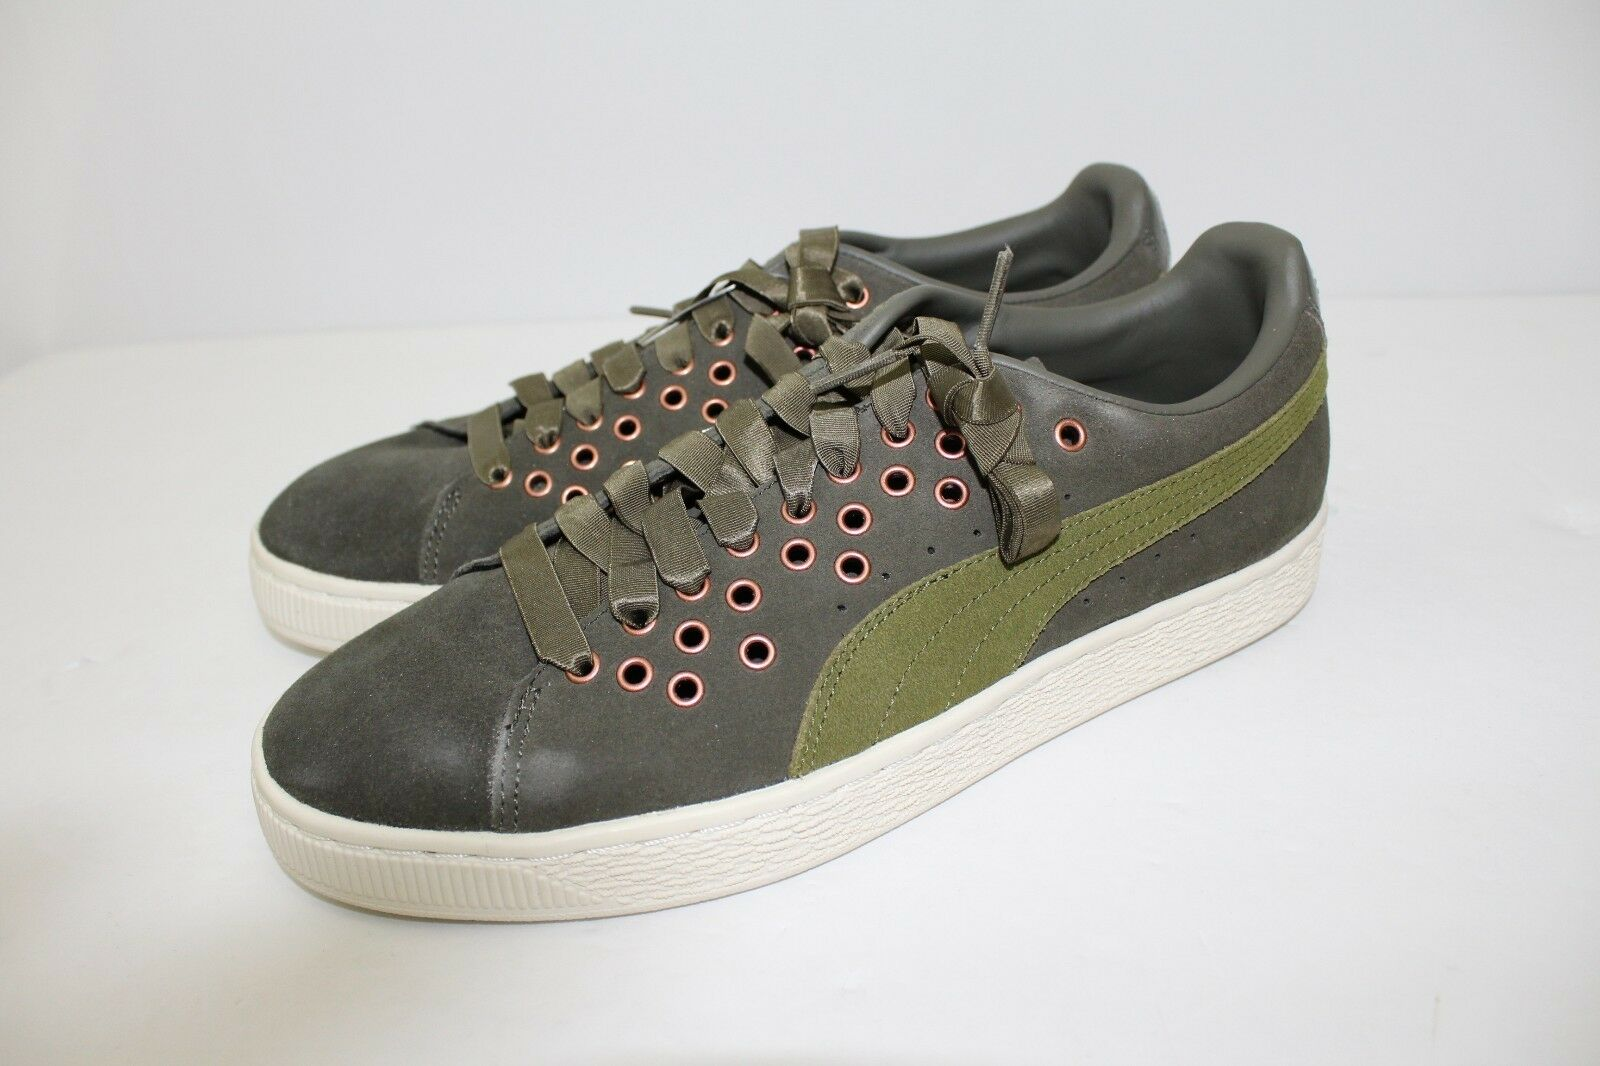 Puma Suede Xl Lace VR Sneakers - Olive - Women's Size 9.5